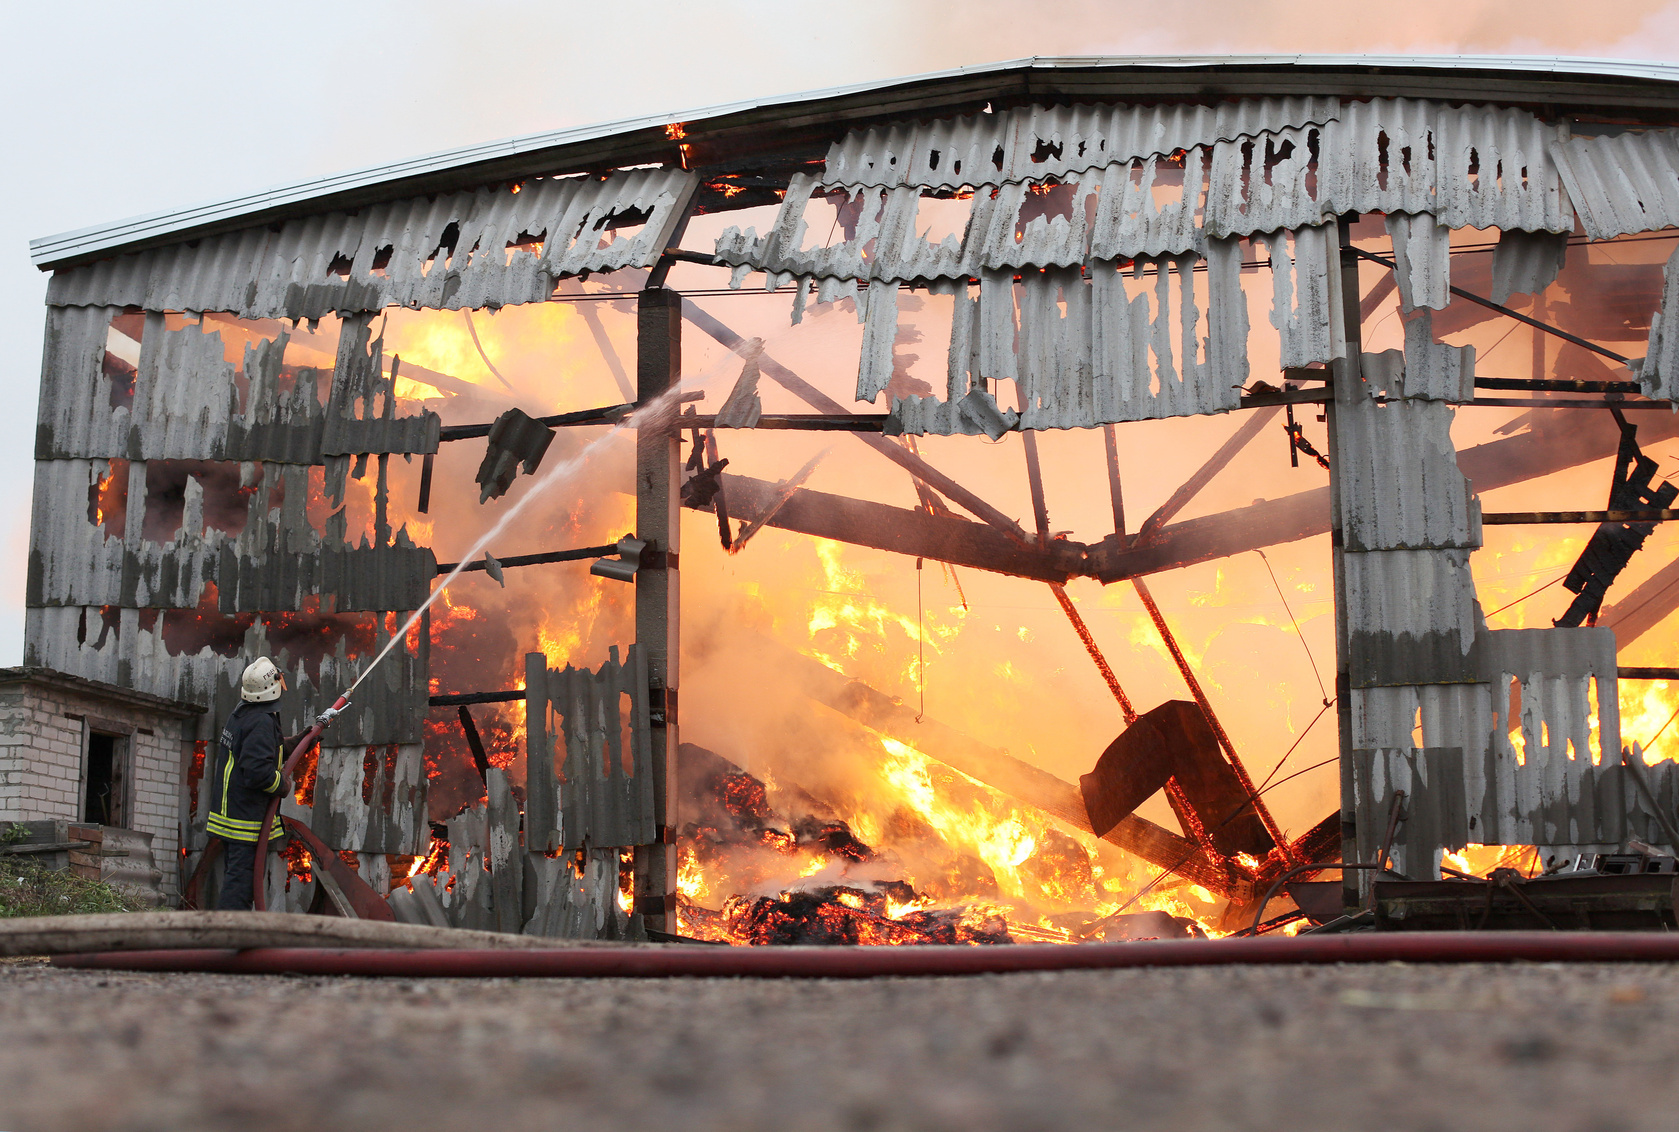 When hay's moisture content is too high, it can actually combust, causing fires and even explosions.